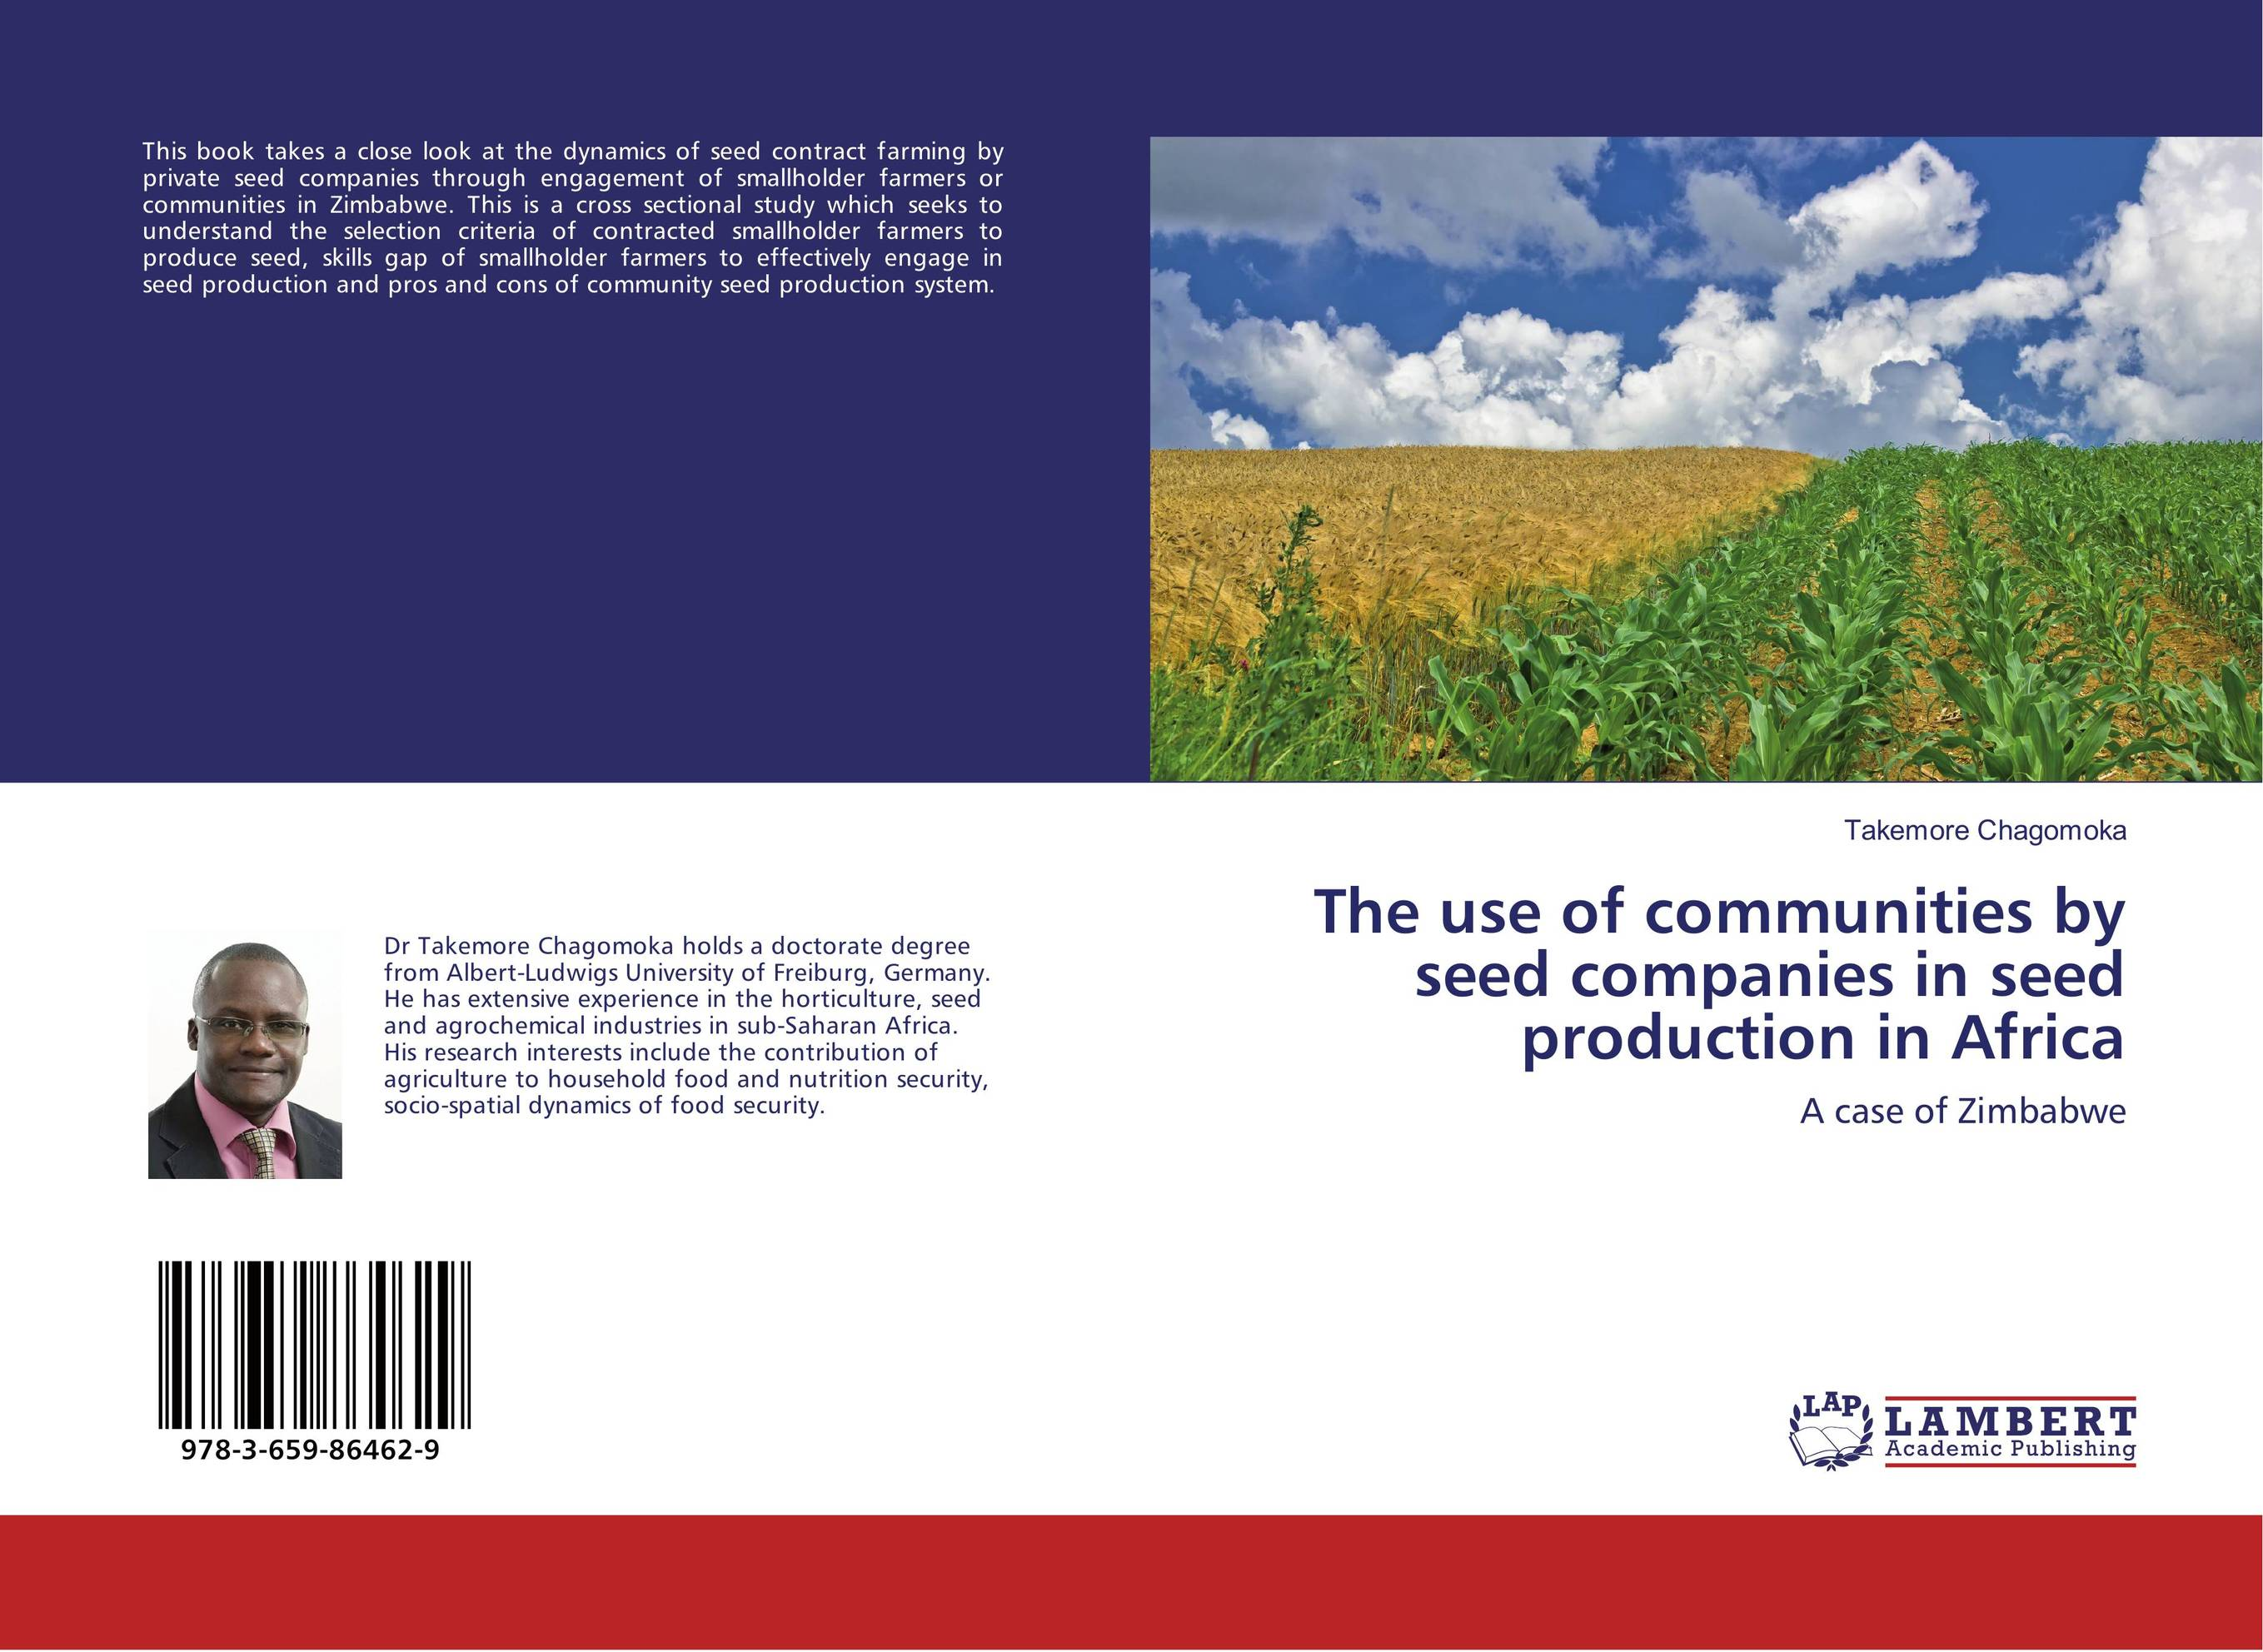 The use of communities by seed companies in seed production in Africa